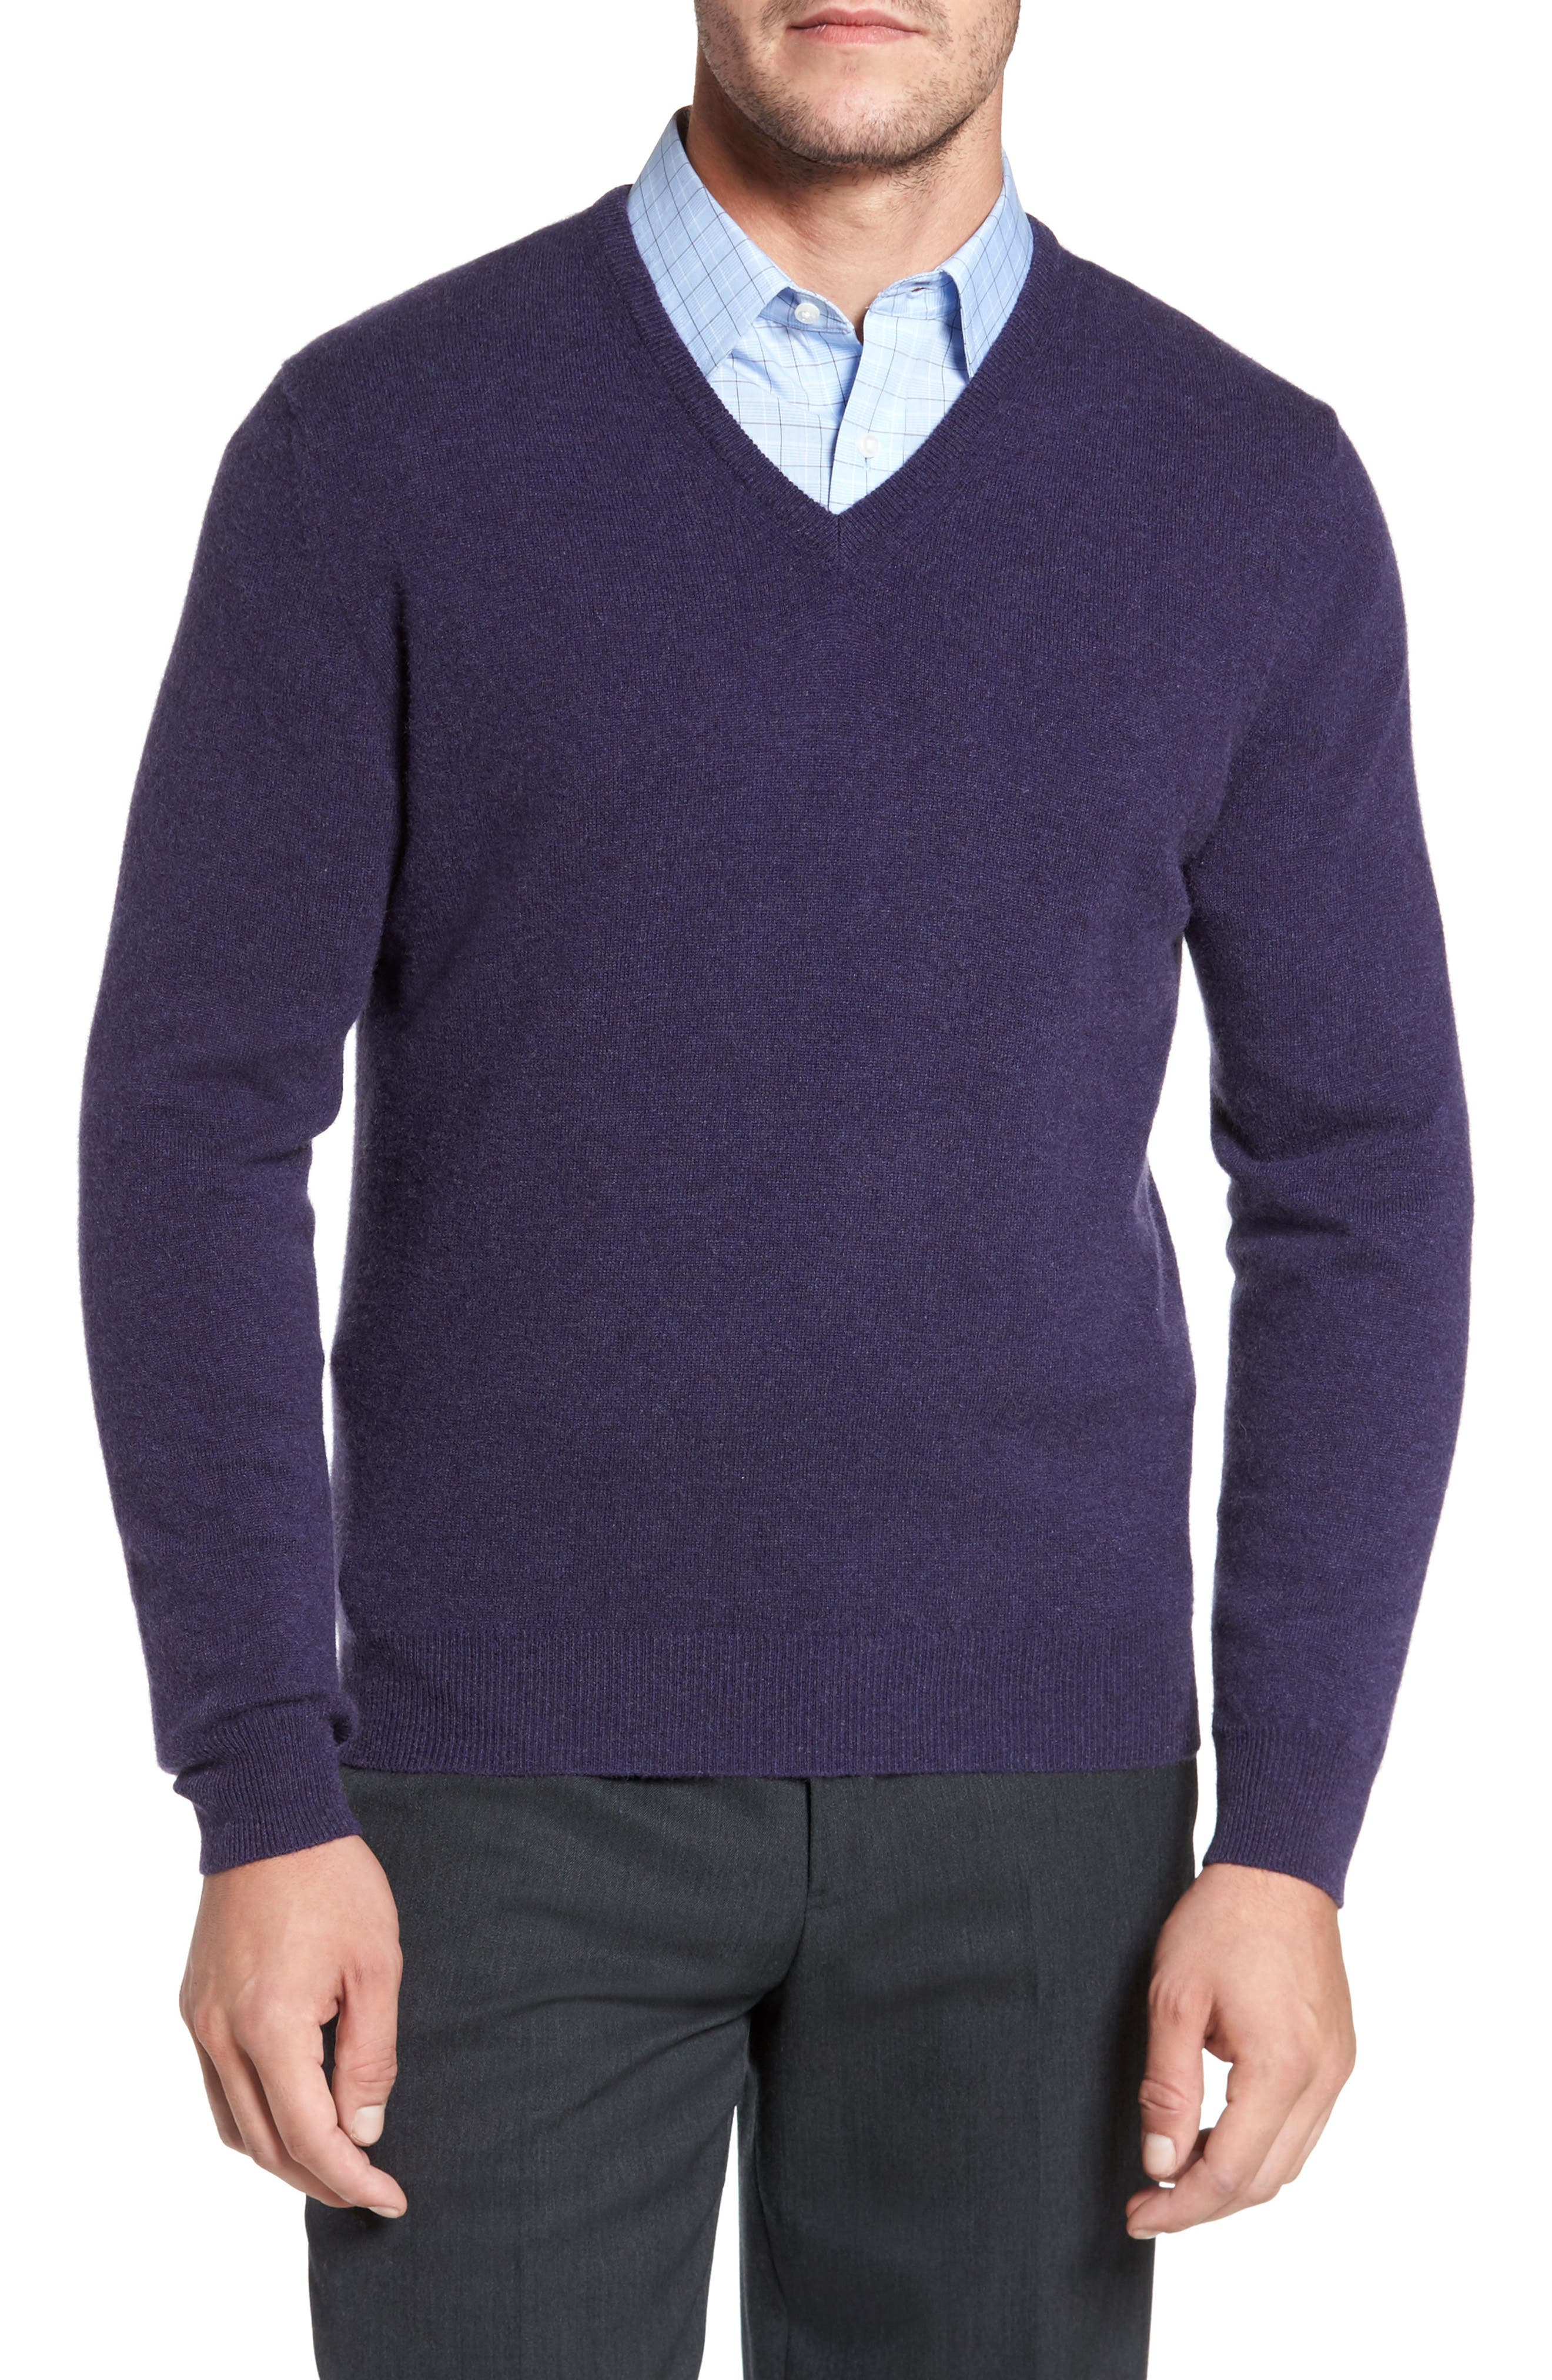 Alternate Image 1 Selected - David Donahue Cashmere V-Neck Sweater